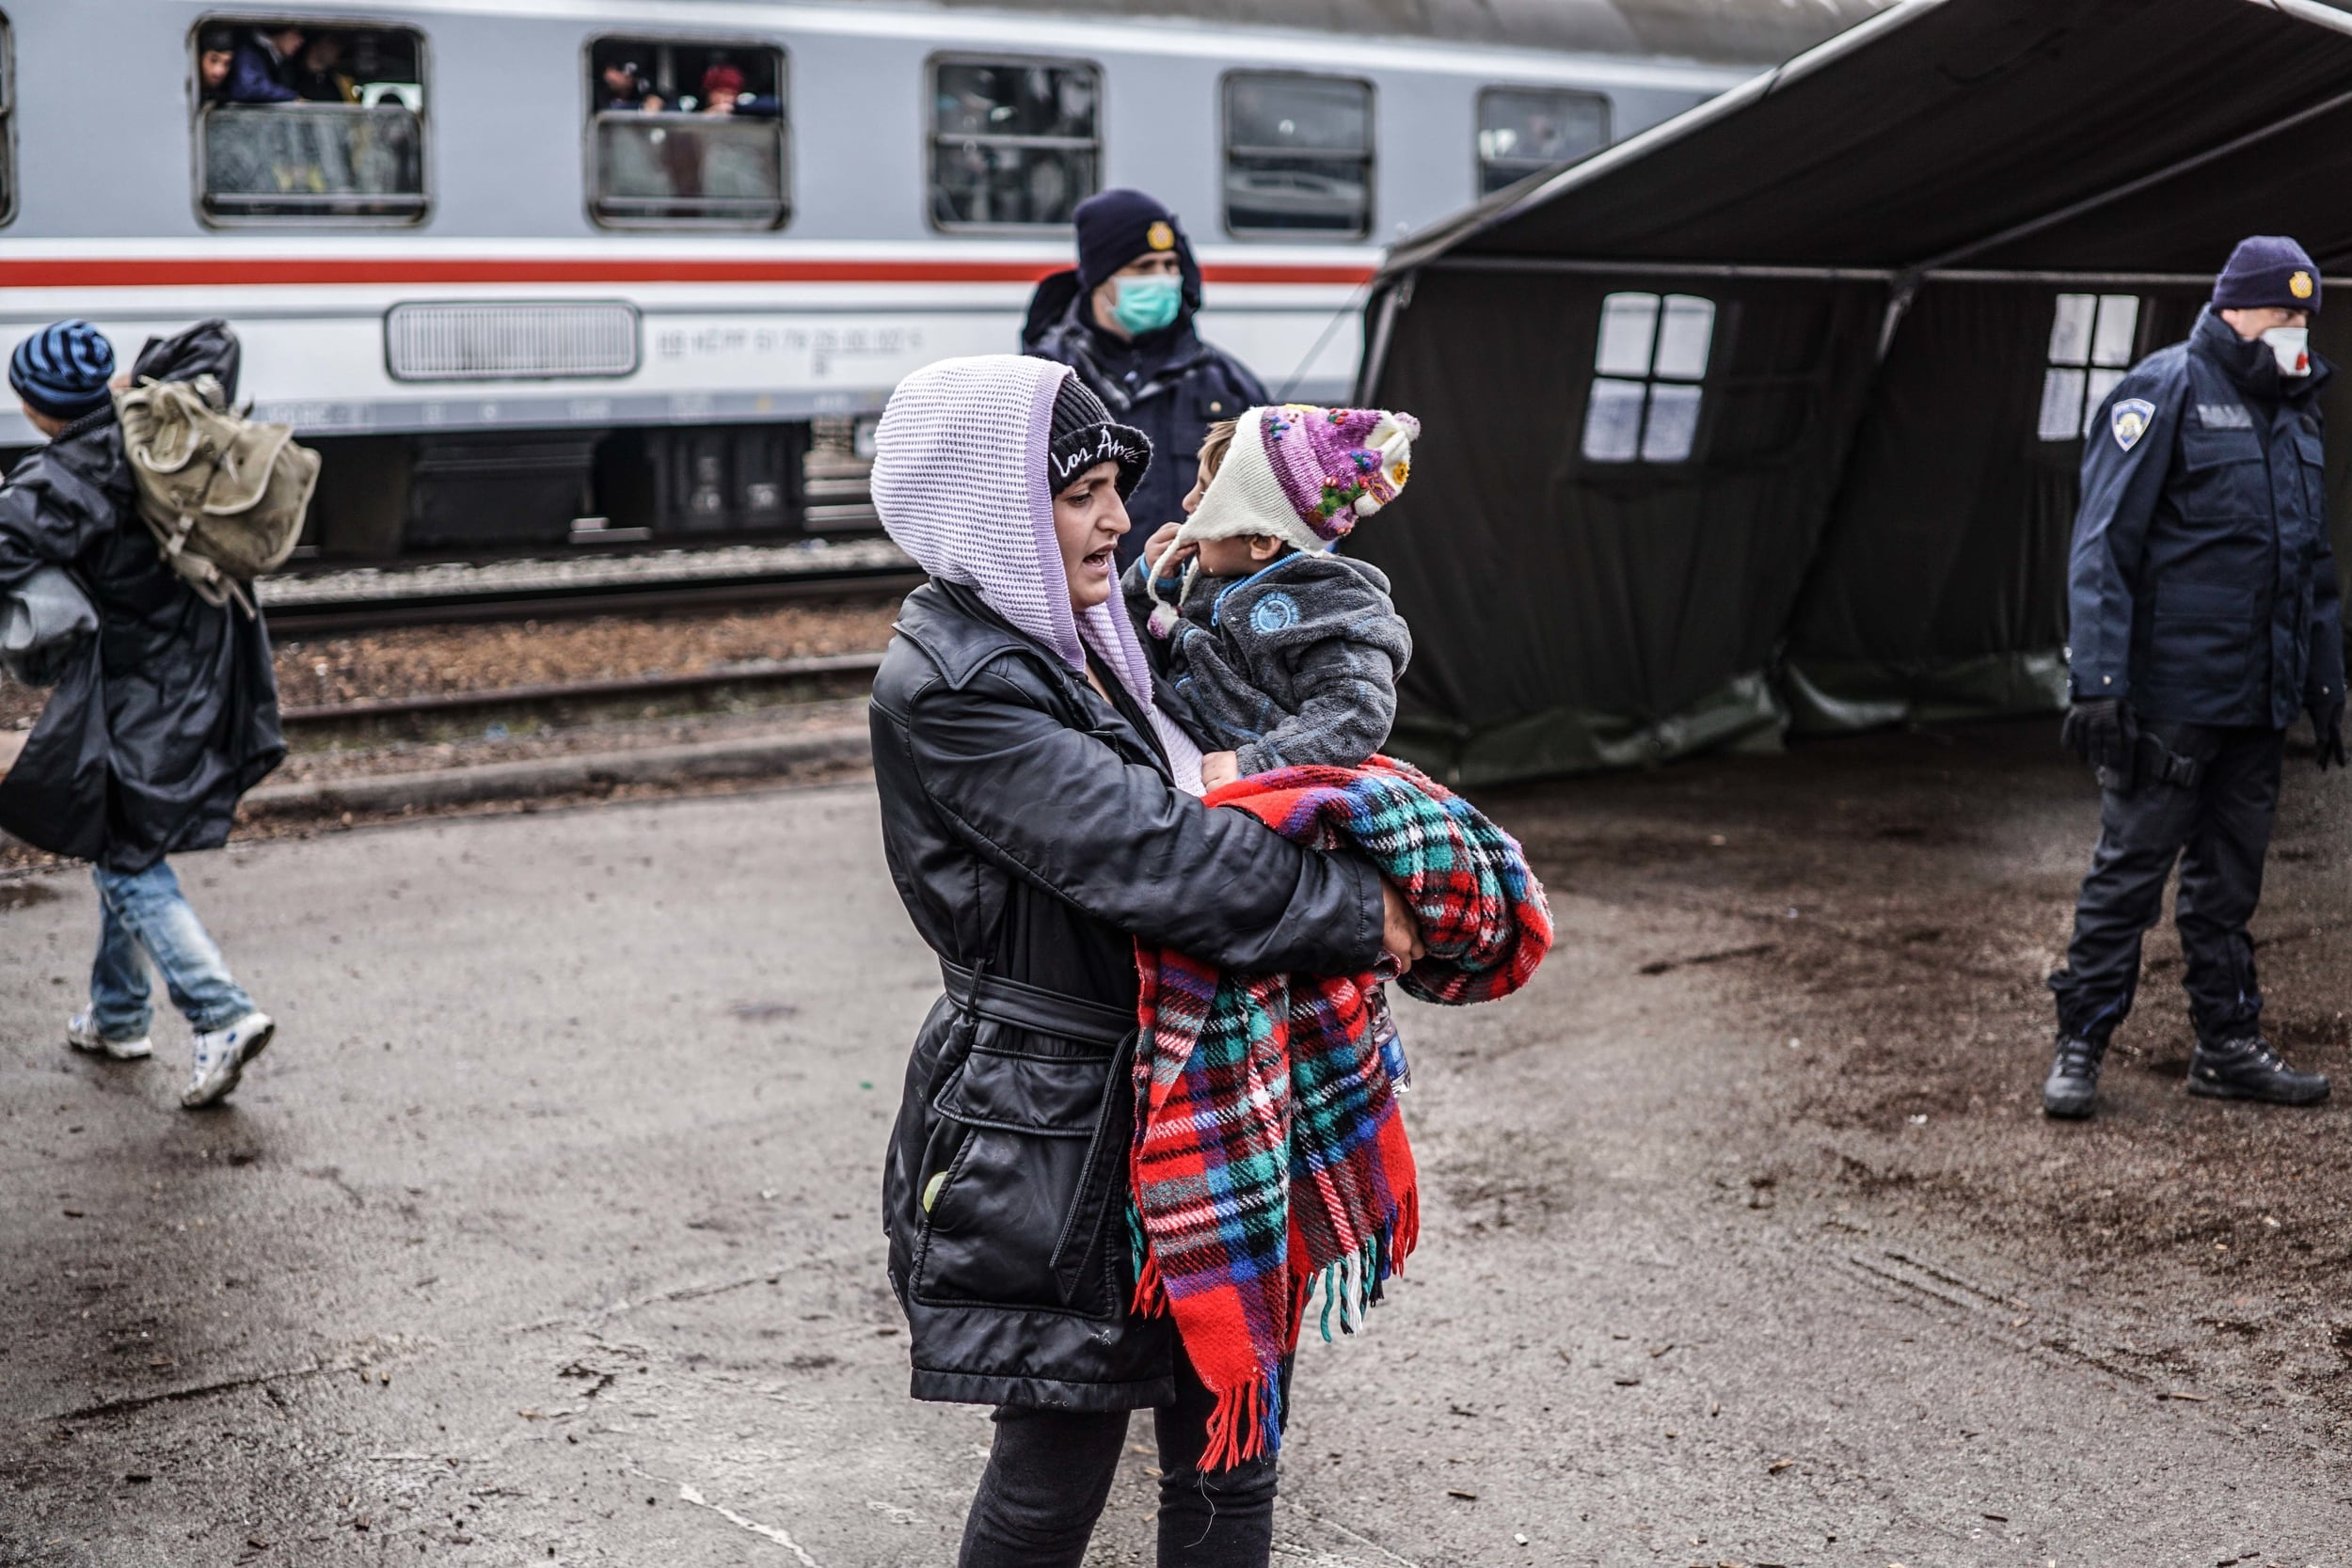 Syrian Refugee Crisis Croatia Slavonski Brod Winter Refugee Camp November 2015 8.jpg